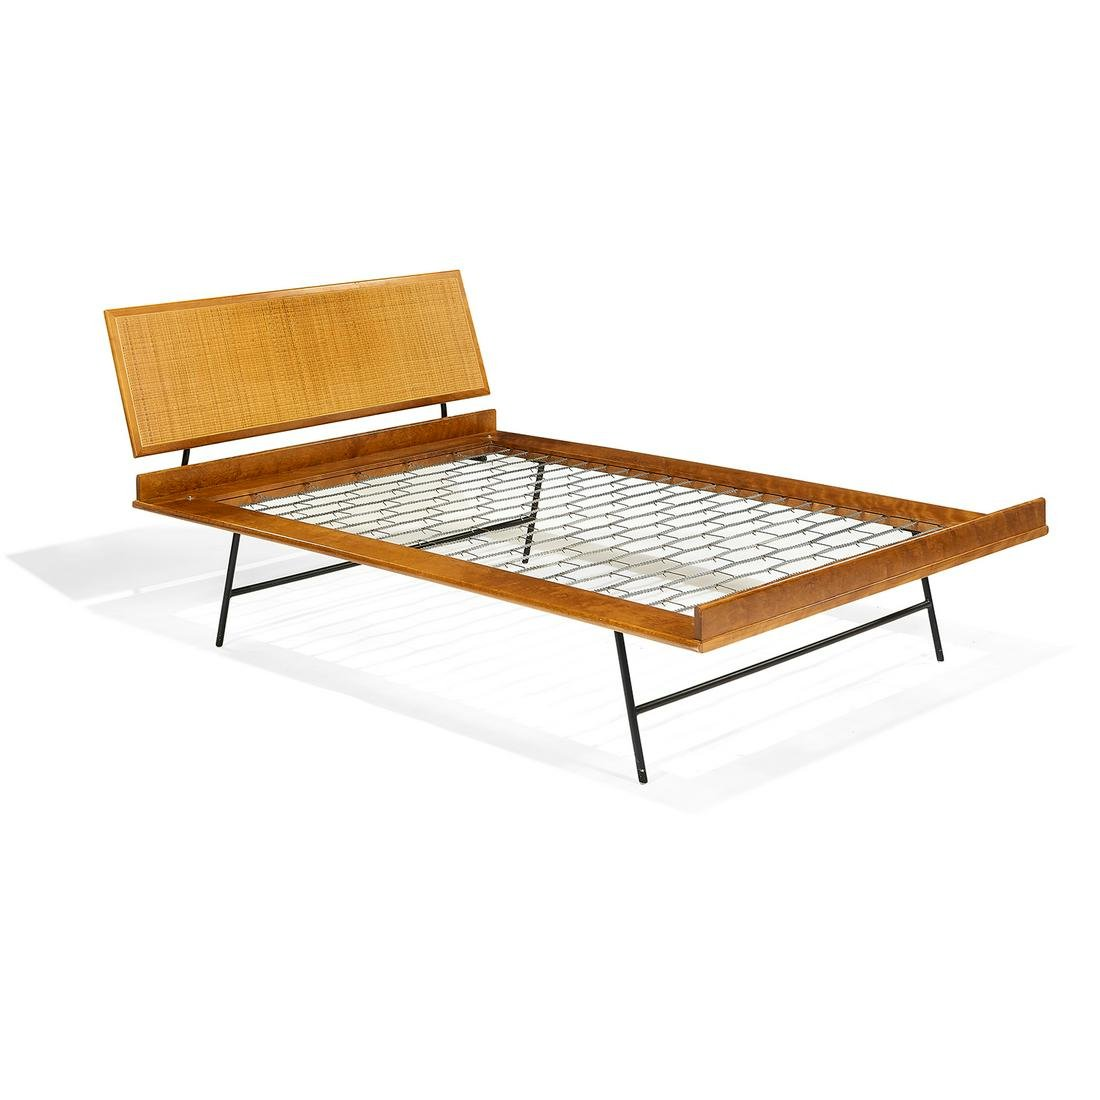 George Nelson for Herman Miller Thin Edge bed